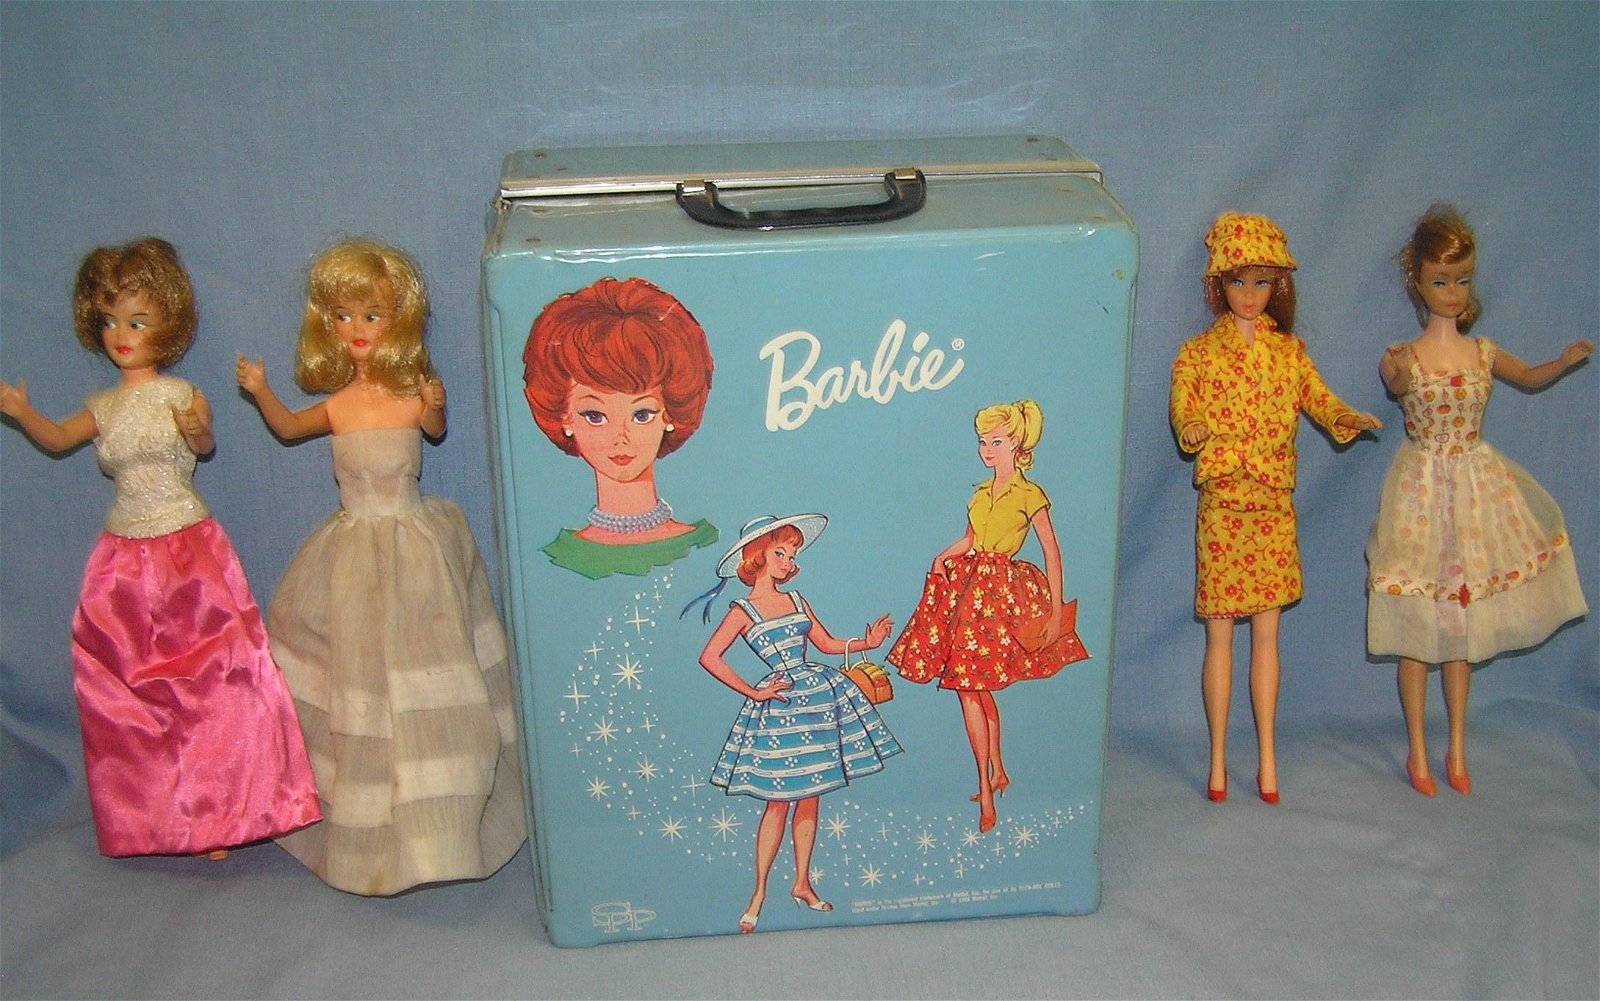 Barbie doll collection featuring 4 vintage dolls and